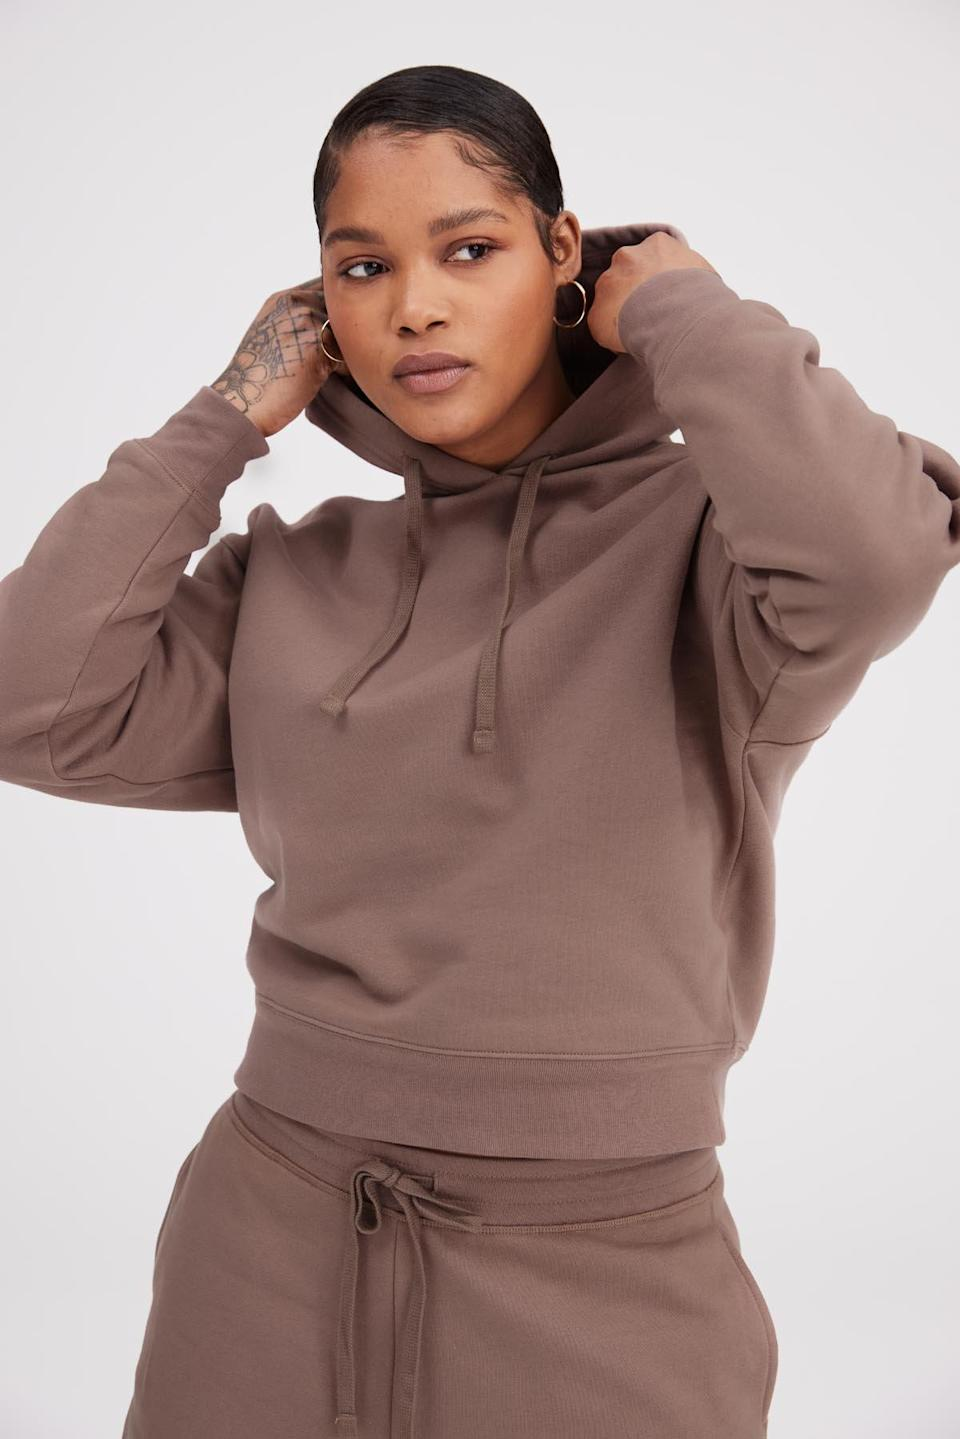 """<h2>Girlfriend Collective Taro Classic Hoodie</h2><br>""""In a perfect world I would want to buy some sophisticated business clothes that make me look like a bonafide professional, but I just want to add to my sweatshirt collection like I do every fall. I do think the lovely Taro hue and the supple sustainable organic cotton make this hoodie a tad more classy than your average sweatshirt (especially if I pair it with matching sweatpants!)."""" <em>– Alexandra Polk, Lifestyle Writer</em><br><br><em>Shop <a href=""""https://girlfriend.com/"""" rel=""""nofollow noopener"""" target=""""_blank"""" data-ylk=""""slk:Girlfriend Collective"""" class=""""link rapid-noclick-resp"""">Girlfriend Collective</a></em><br><br><strong>Girlfriend Collective</strong> Taro Classic Hoodie, $, available at <a href=""""https://go.skimresources.com/?id=30283X879131&url=https%3A%2F%2Fwww.girlfriend.com%2Fcollections%2Fsweatshirts%2Fproducts%2Ftaro-classic-hoodie"""" rel=""""nofollow noopener"""" target=""""_blank"""" data-ylk=""""slk:Girlfriend Collective"""" class=""""link rapid-noclick-resp"""">Girlfriend Collective</a>"""